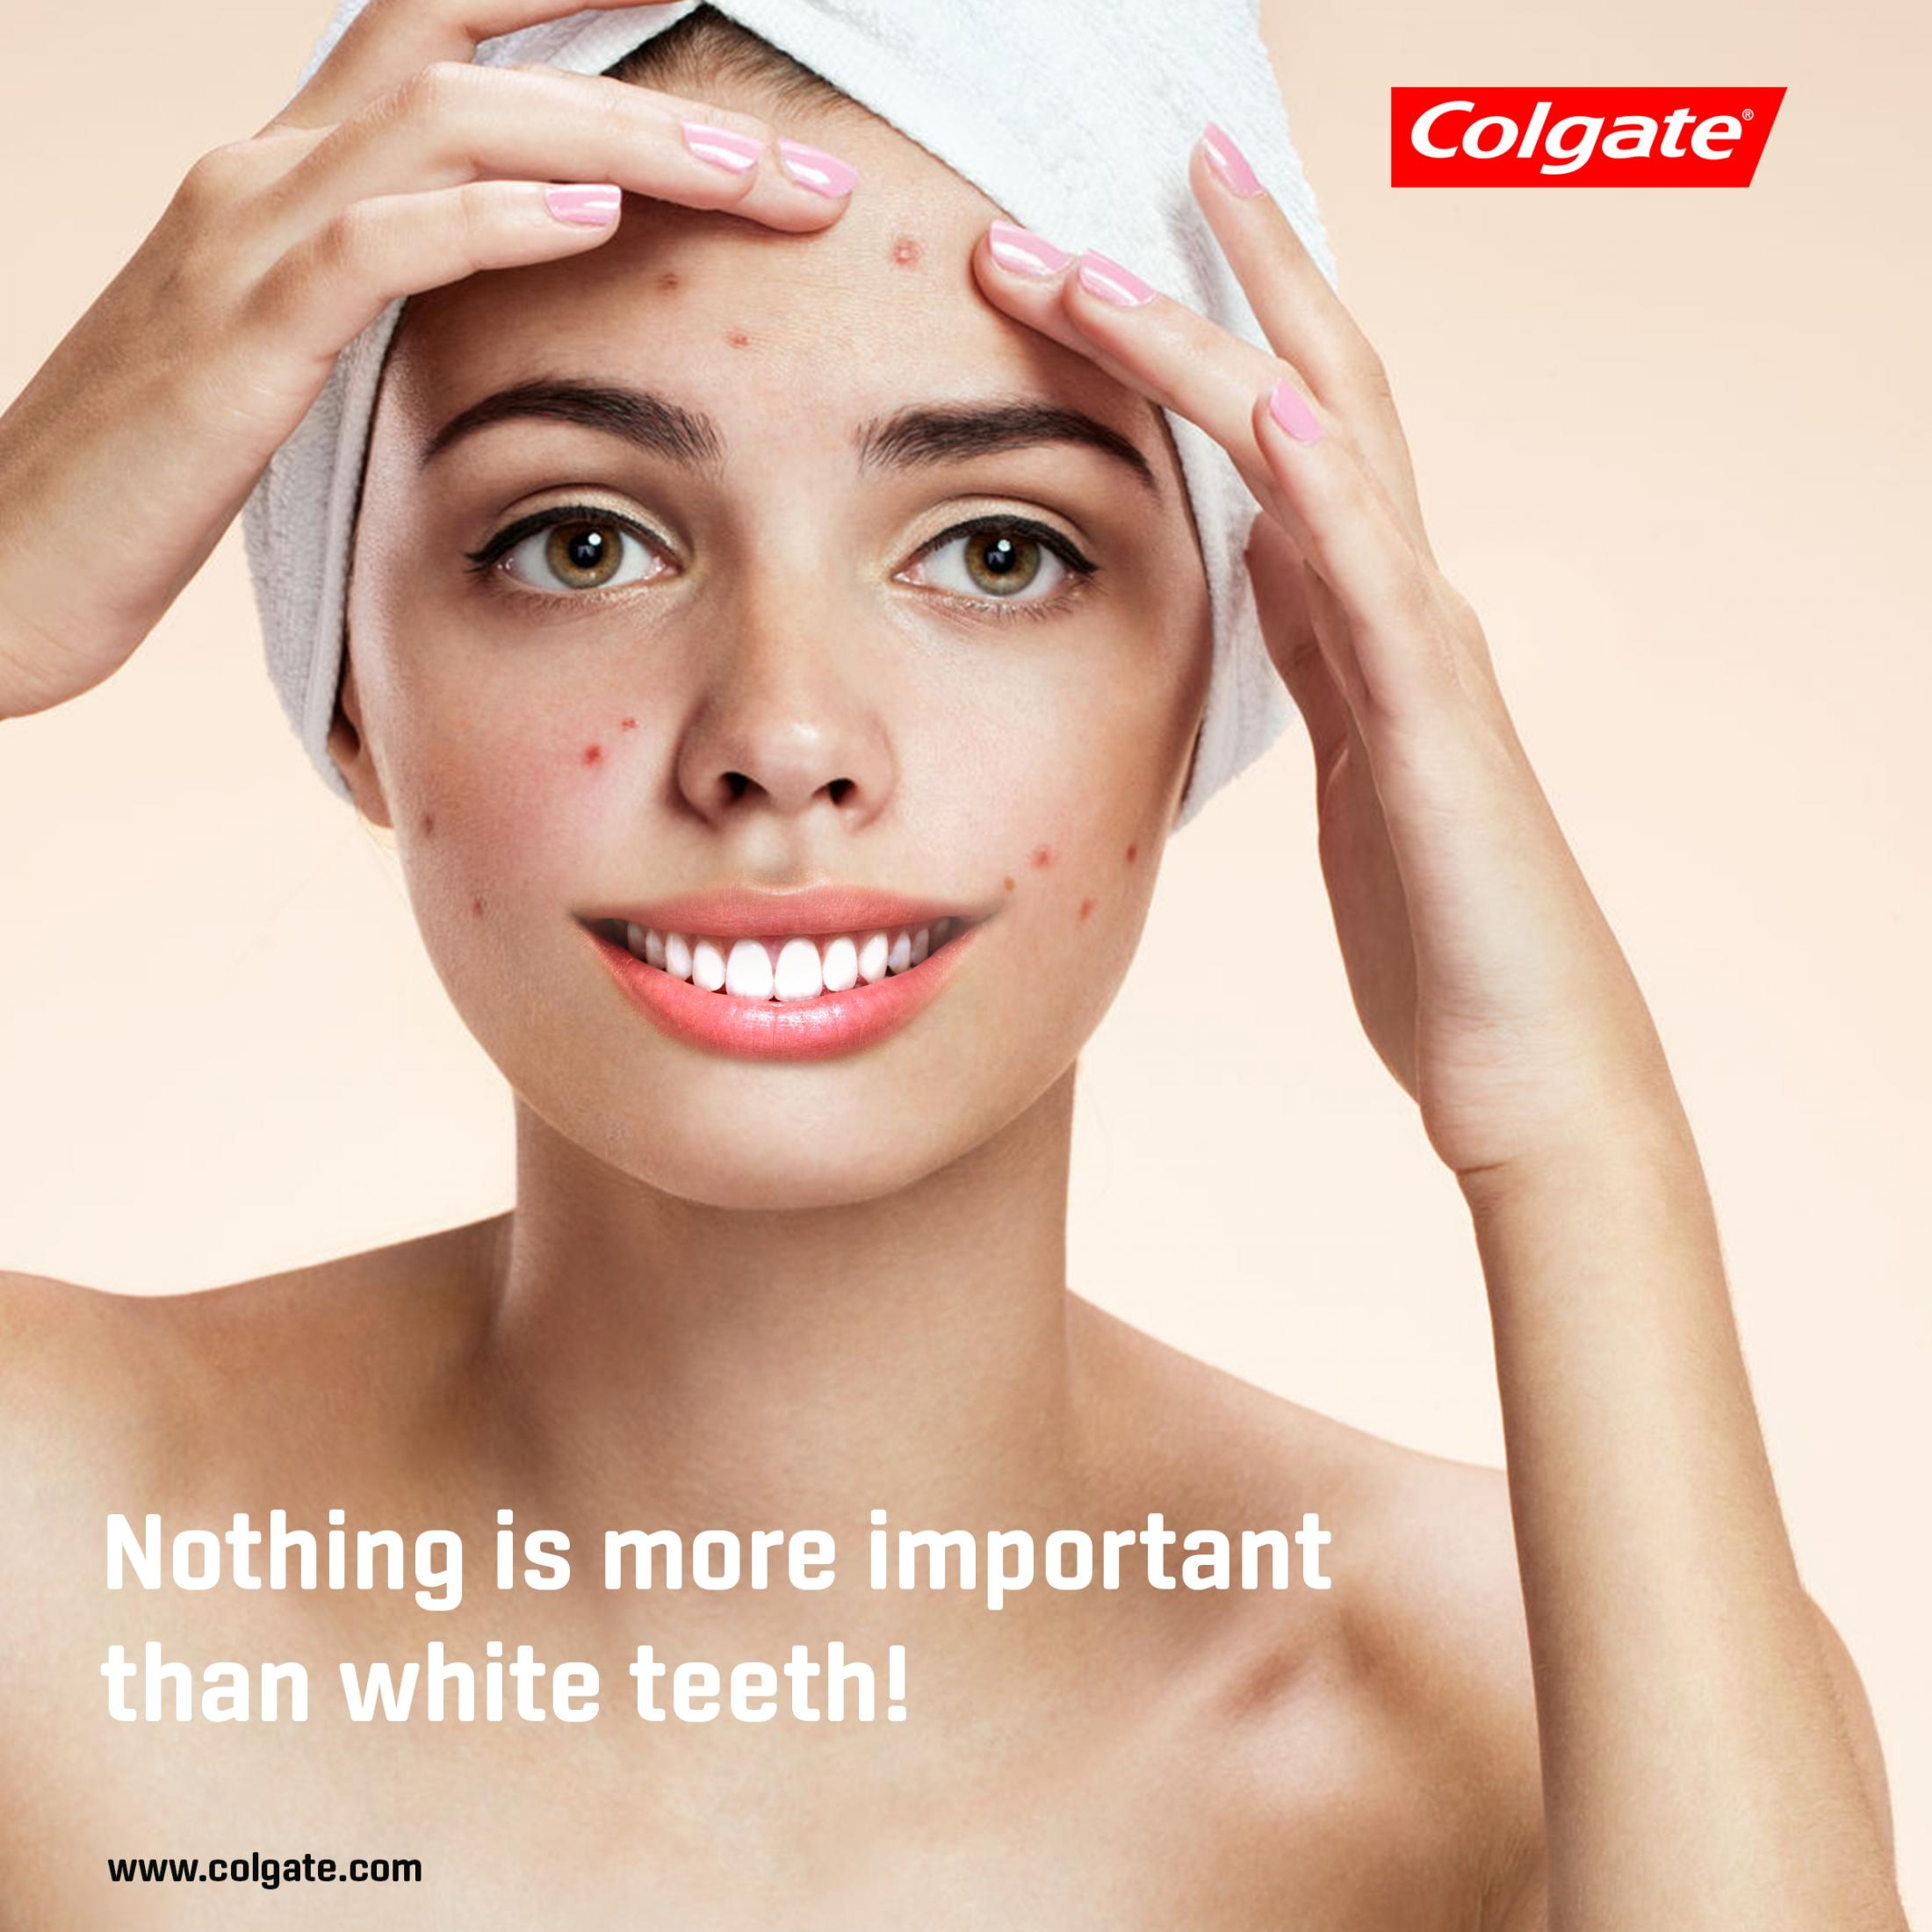 Colgate Print Ad - White Teeth, 1